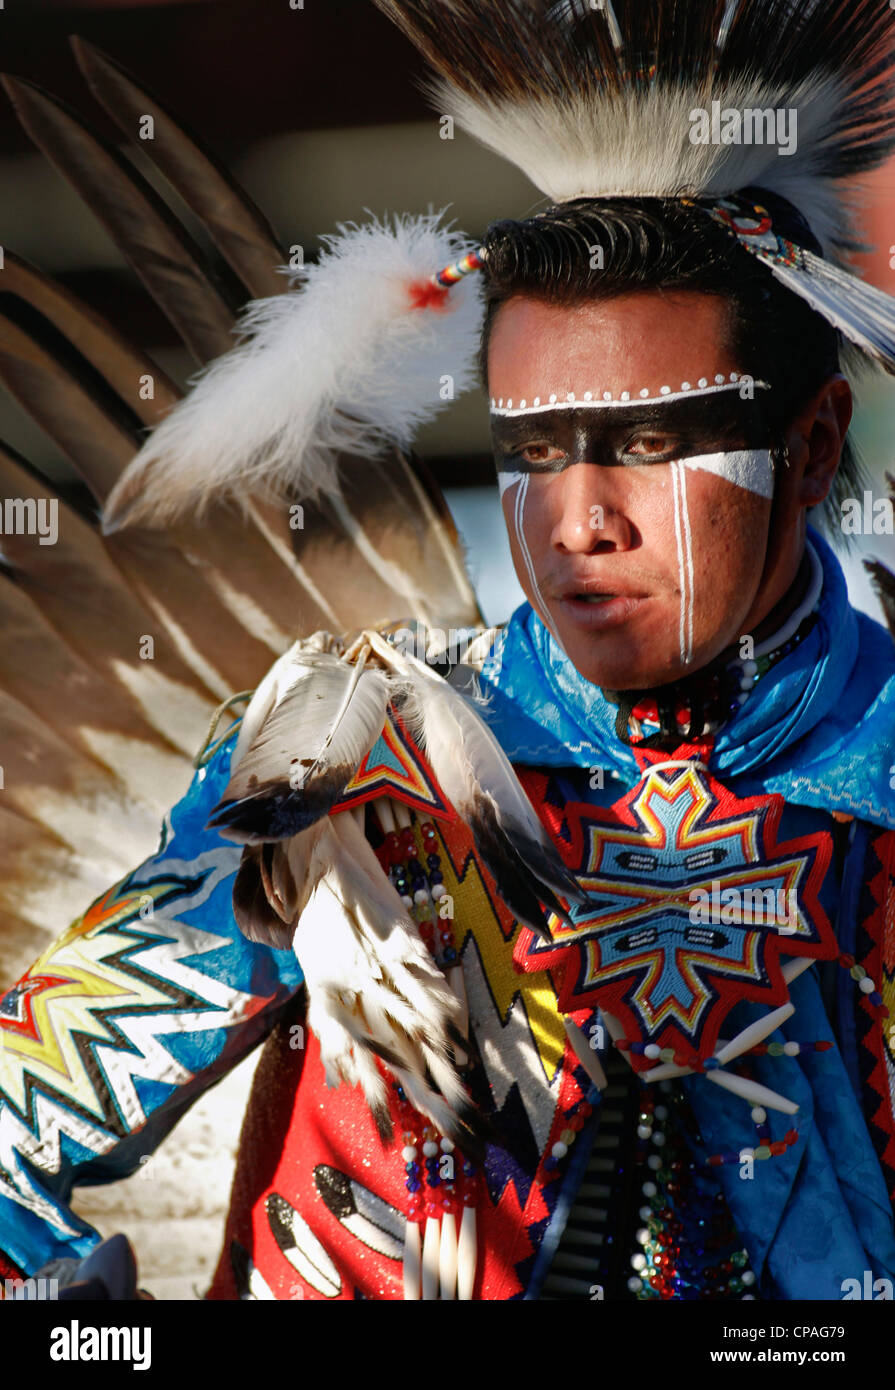 USA, Idaho, Fort Hall. Participant in the powwows held during the annual Shoshone-Bannock Festival - Stock Image